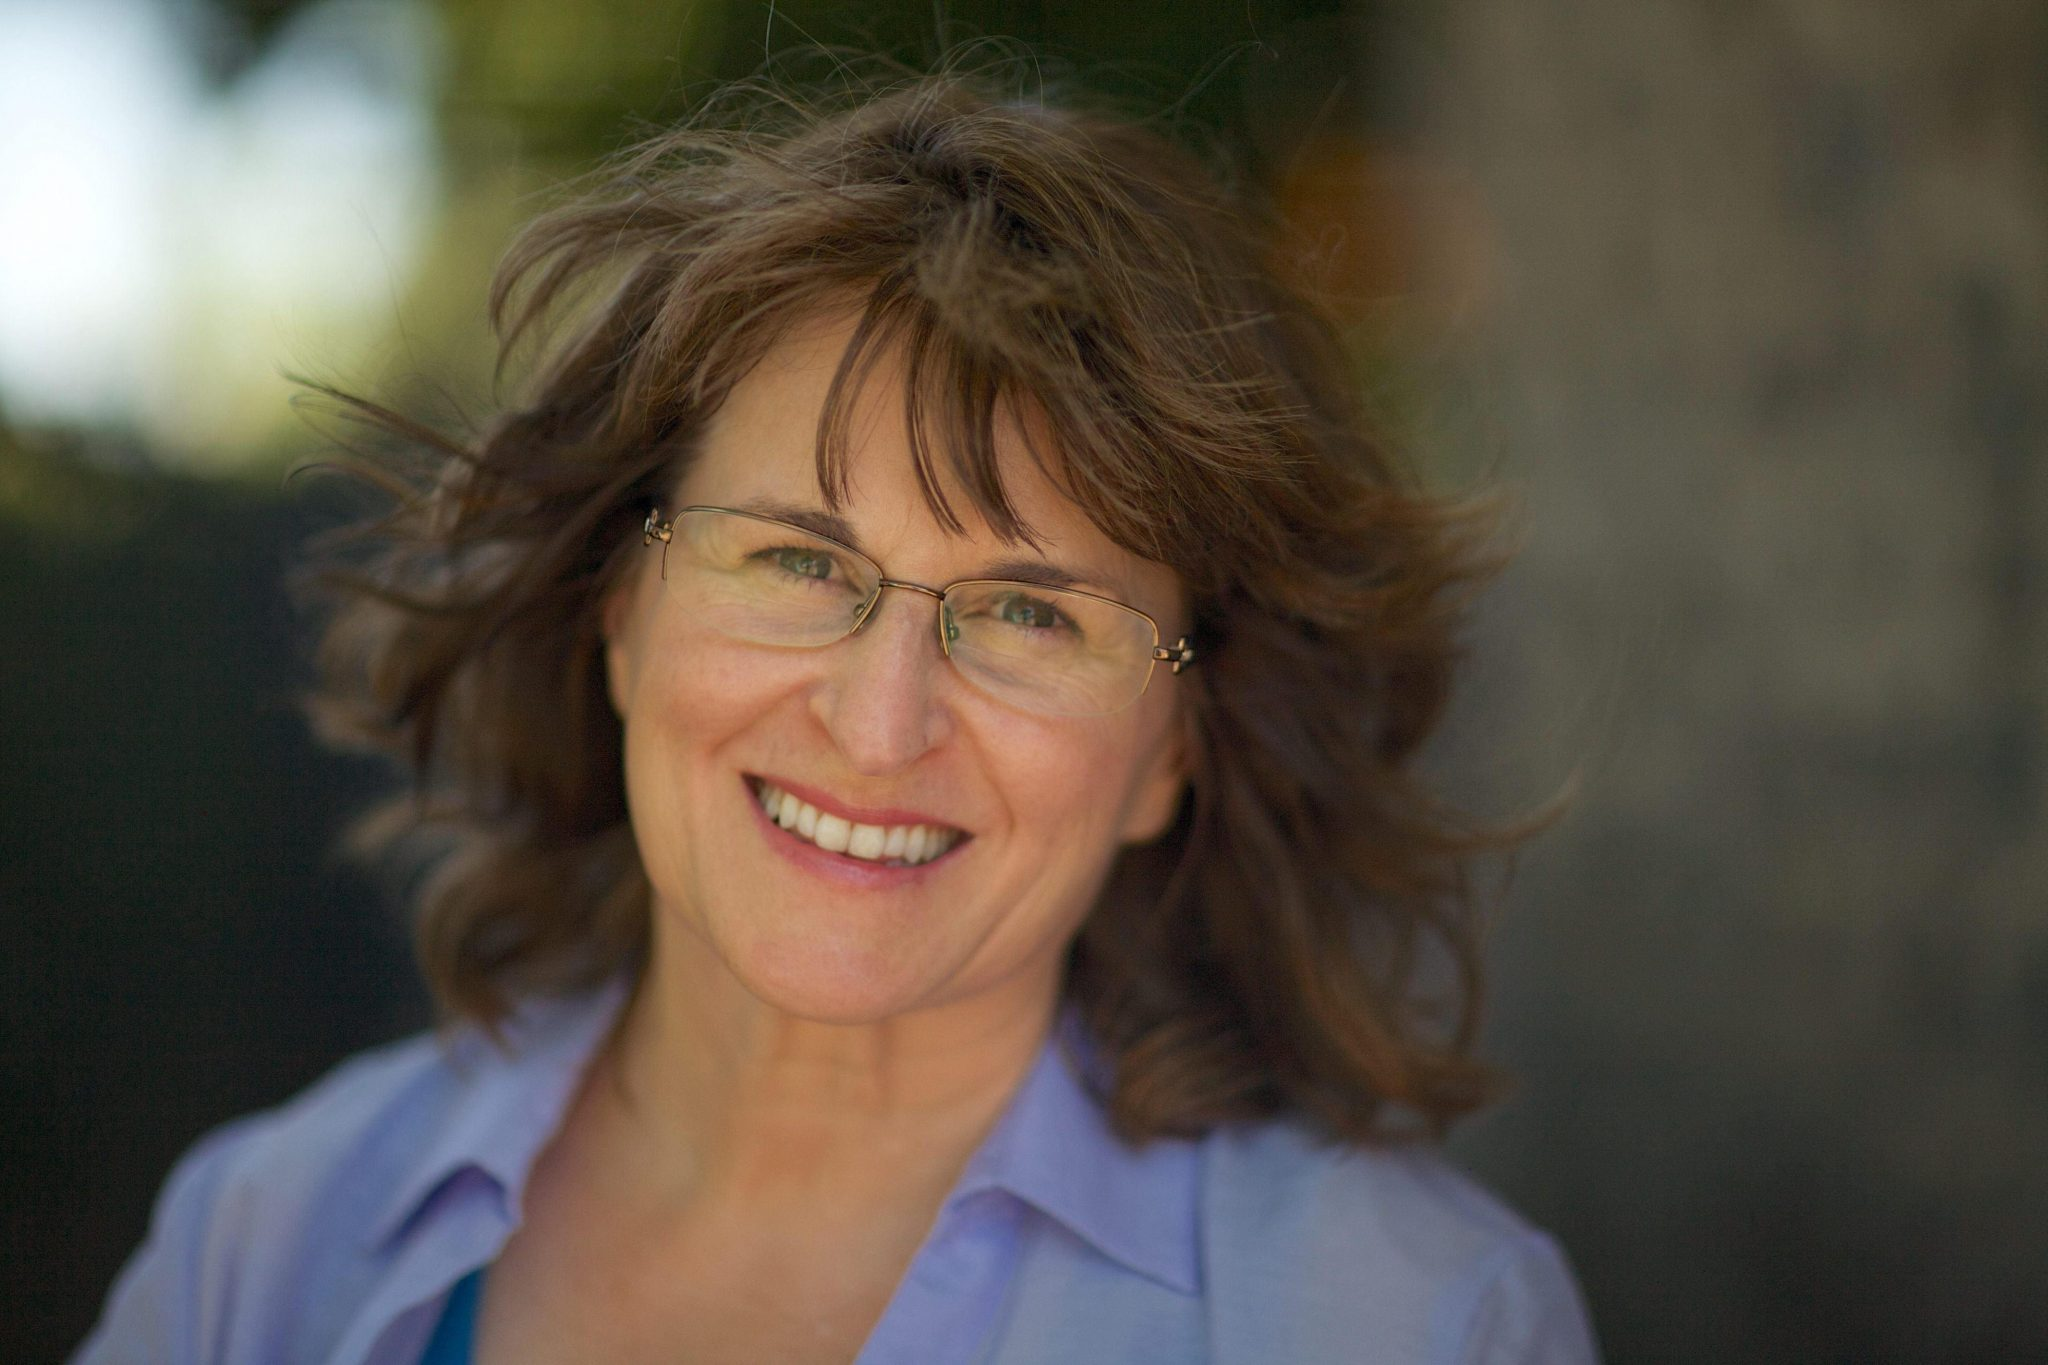 Photo of Karla McLaren, a white middle aged person with brown wavy hair, green eyes, and glasses